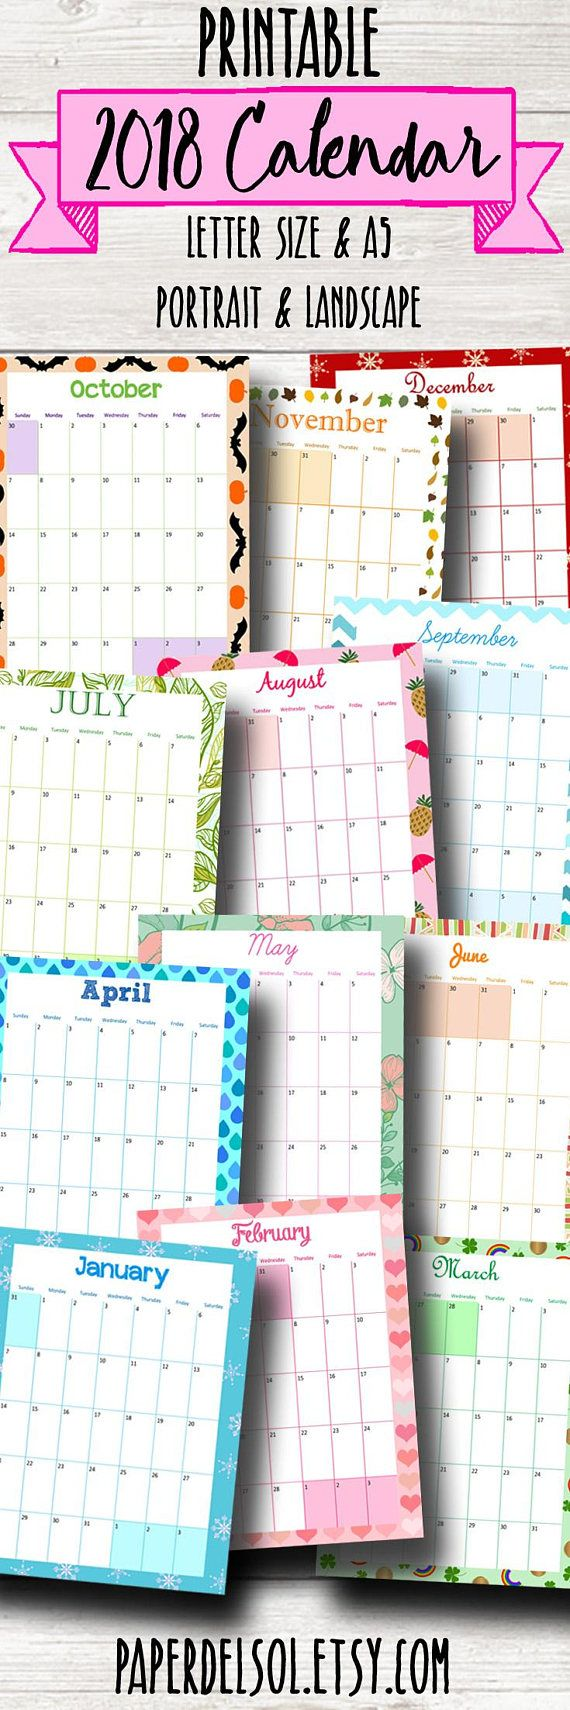 Printable 2018 calendars. These would be perfect for planning my upcoming year. #ad #planning #printable